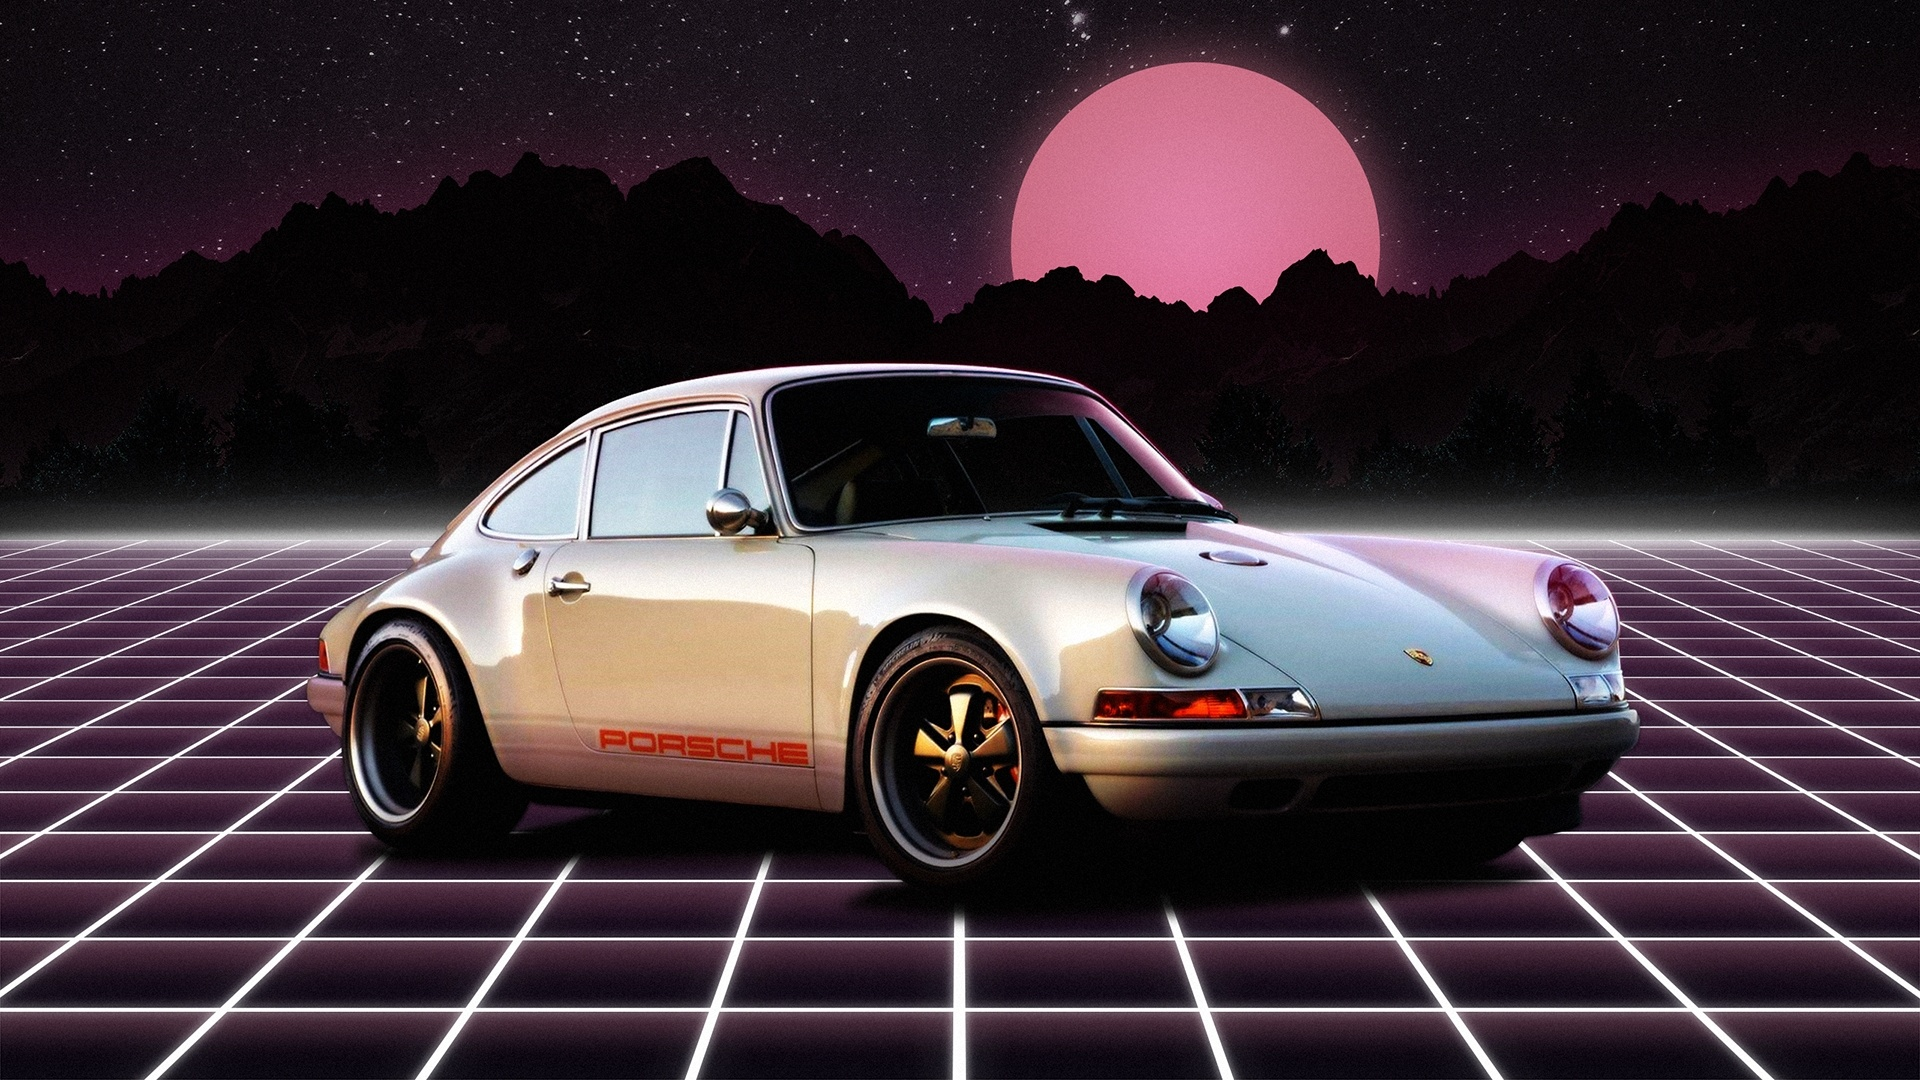 Porsche windows wallpaper